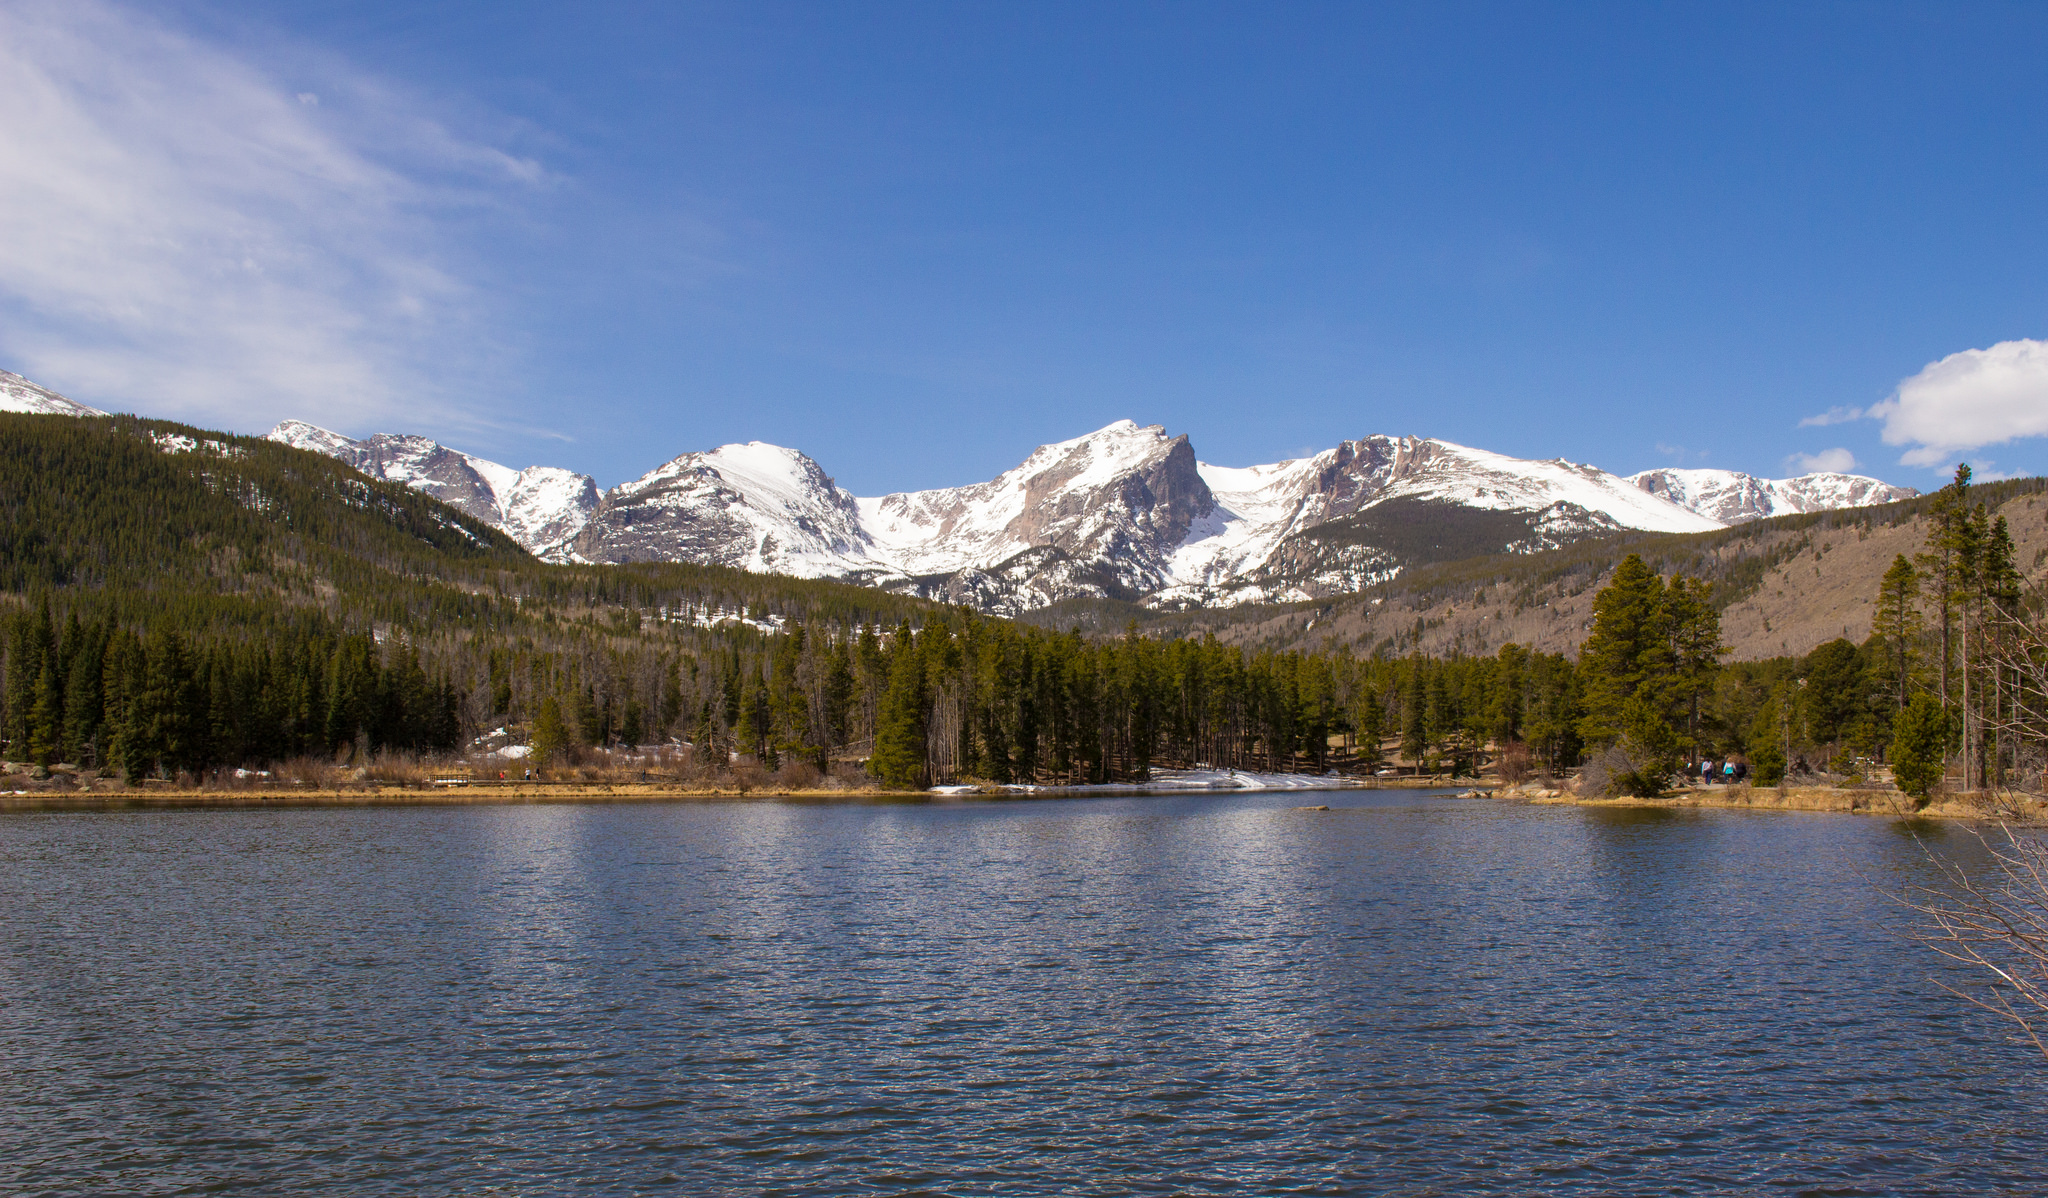 Photo: Sprague Lake in RMNP